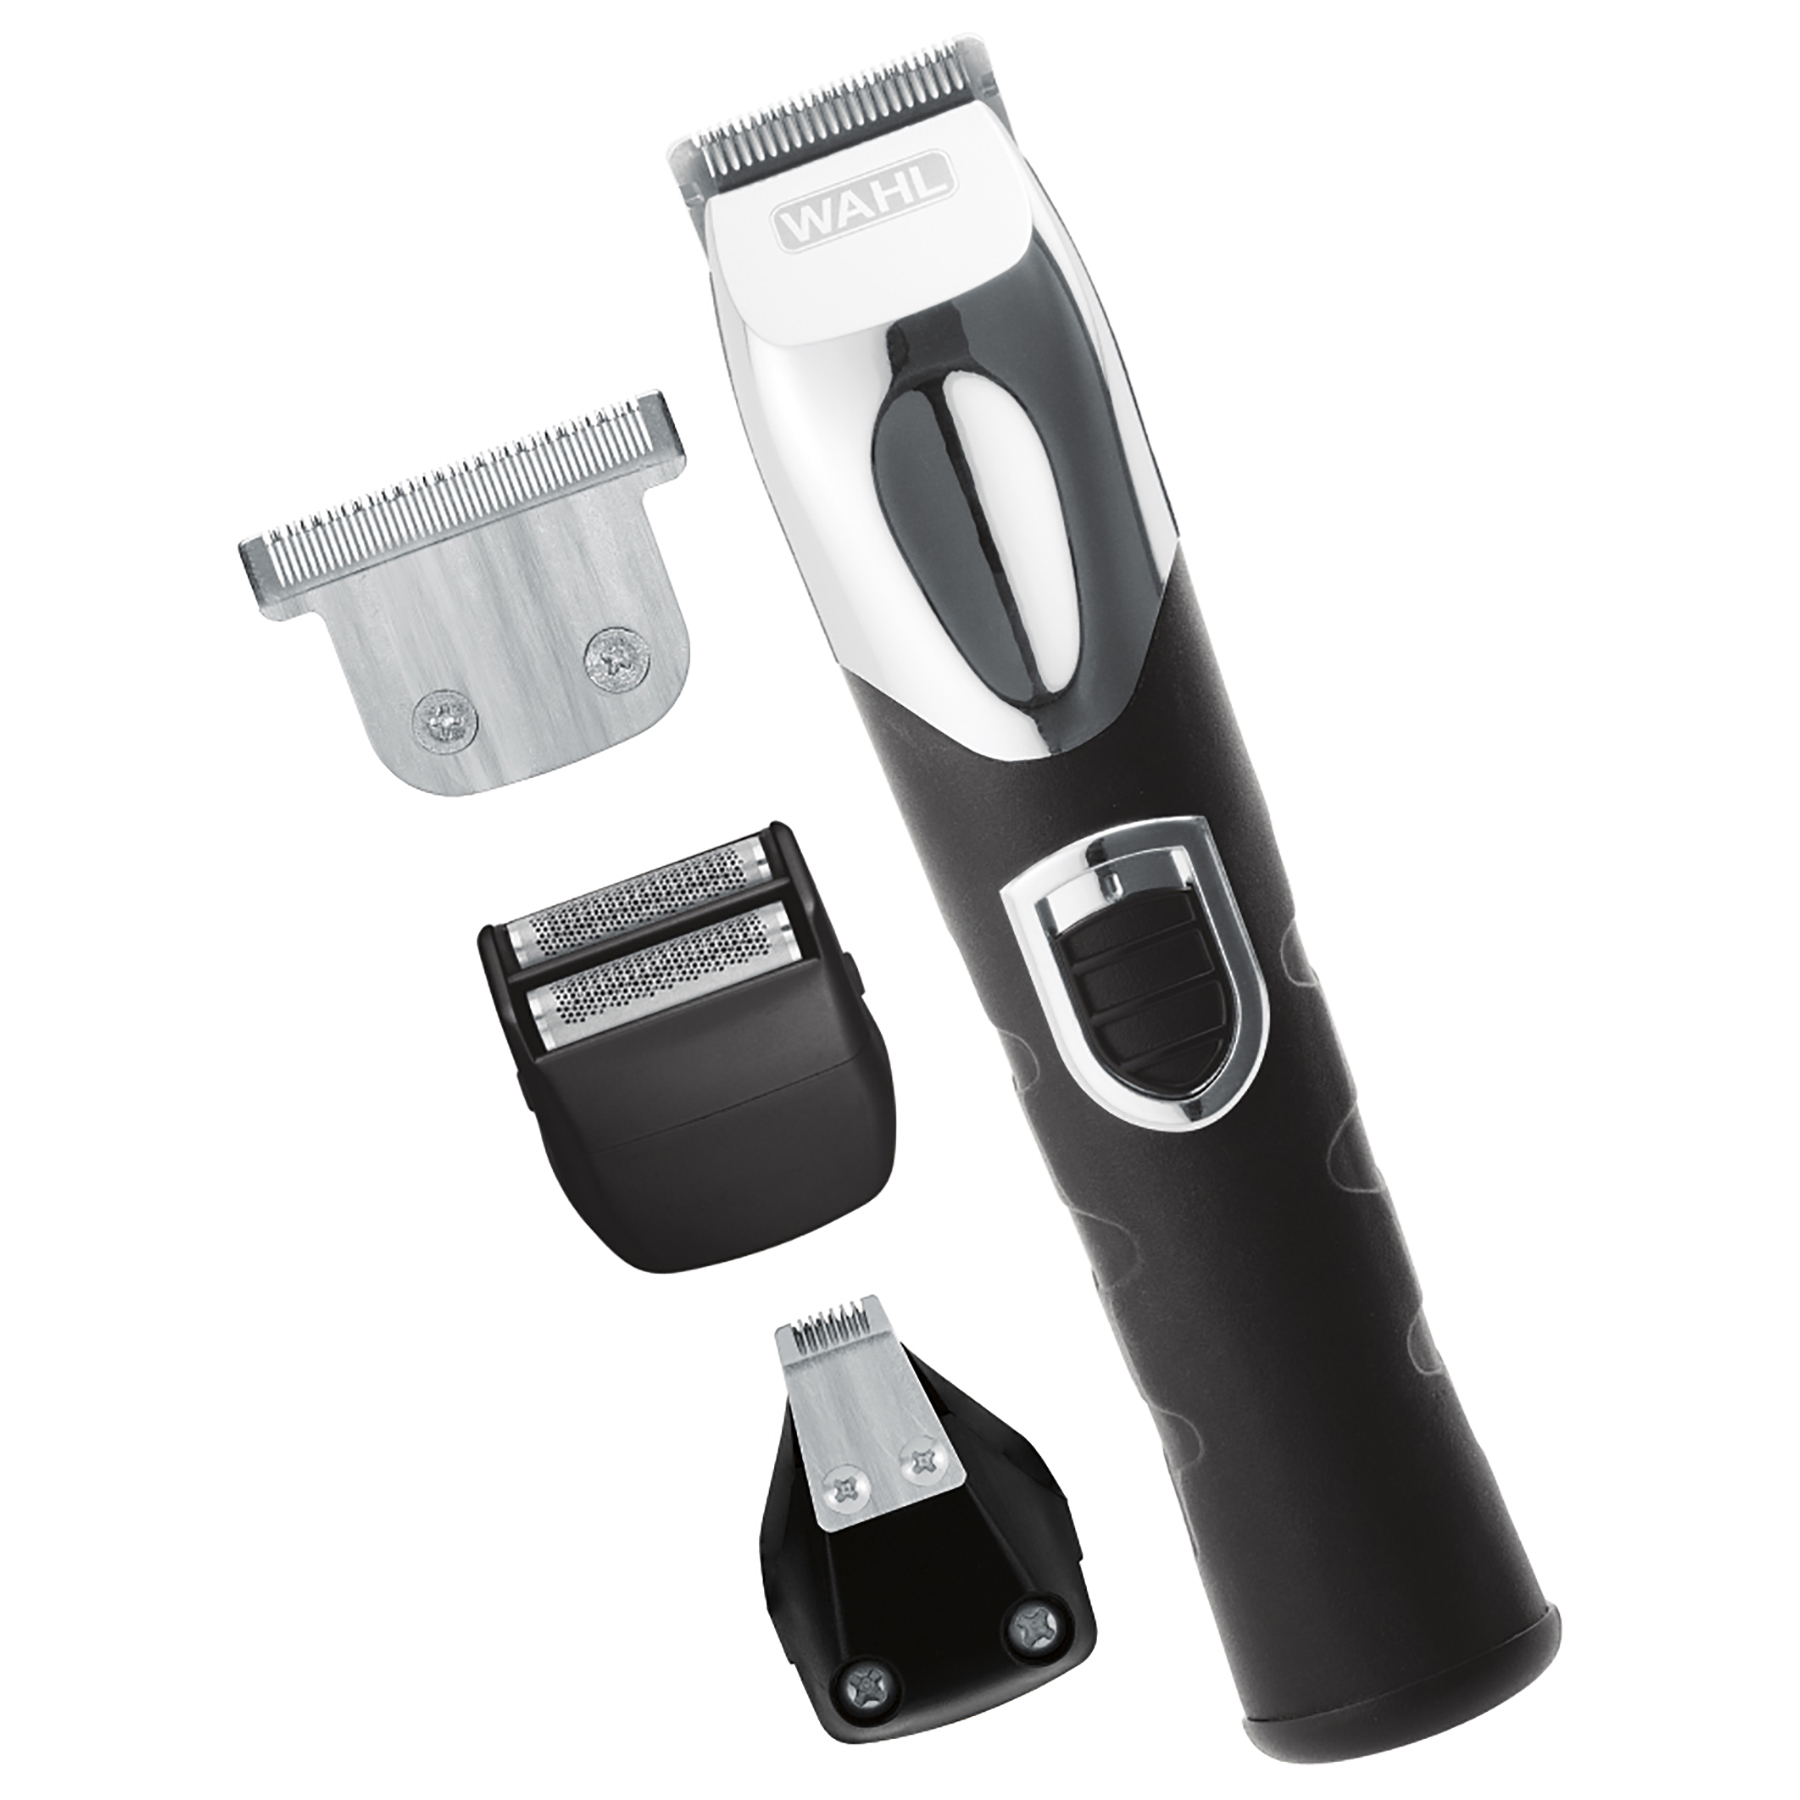 Wahl Lithium Ion Trimmer  All-In-One Rechargeable Grooming Kit